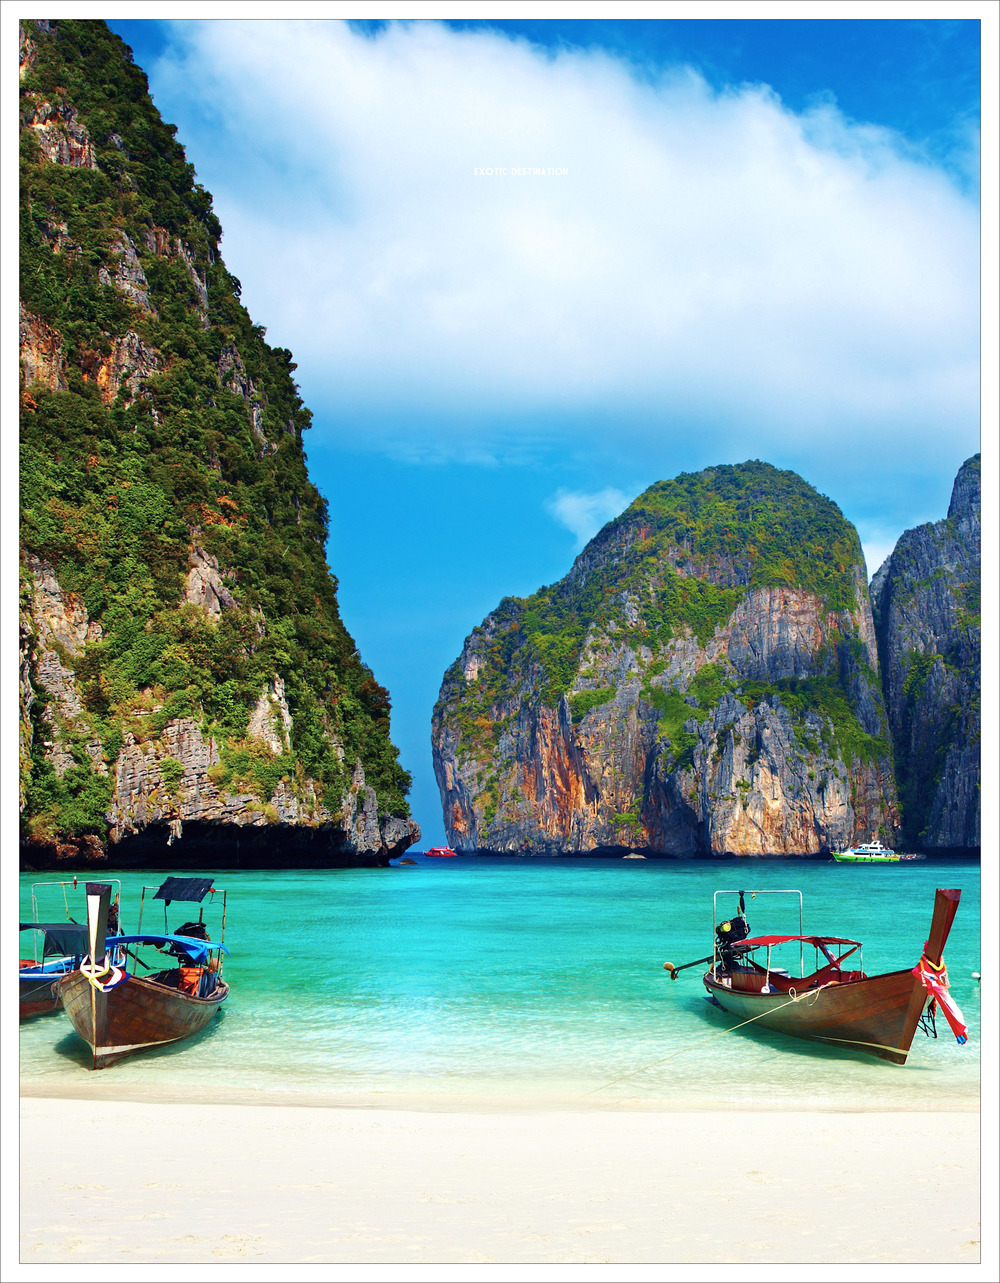 It's not surprising that Thailand attracts more visitors than any other country in Southeast Asia. Laos and Cambodia border the country to the east, to the south lies the Gulf of Thailand and Malaysia and to the west you'll find the Andaman Sea and Myanmar.